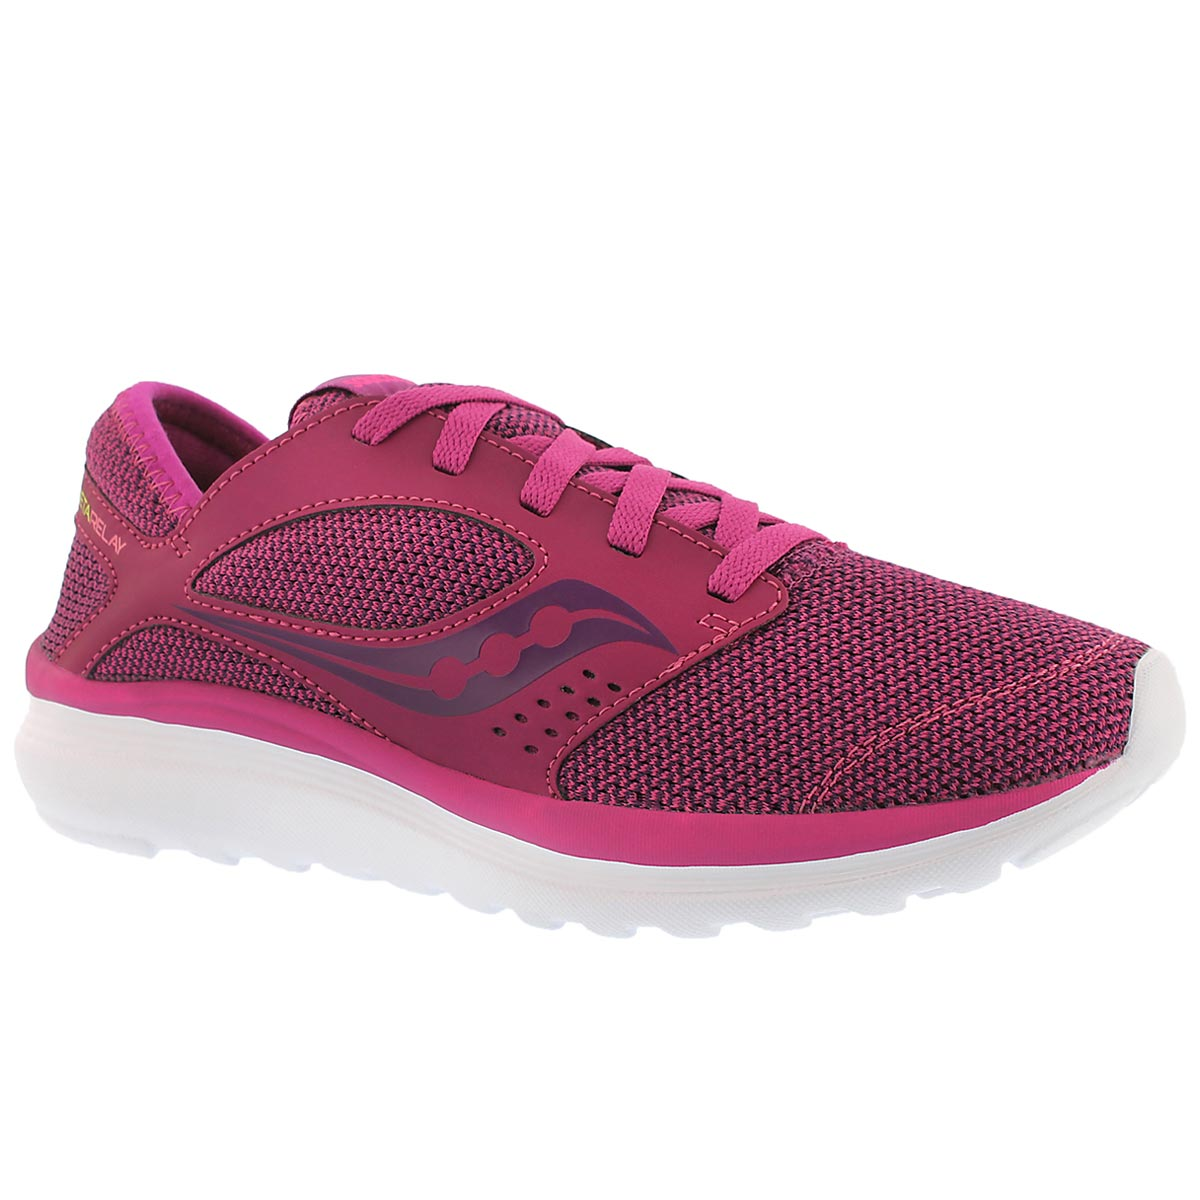 Lds Kineta Relay fuschia running shoe